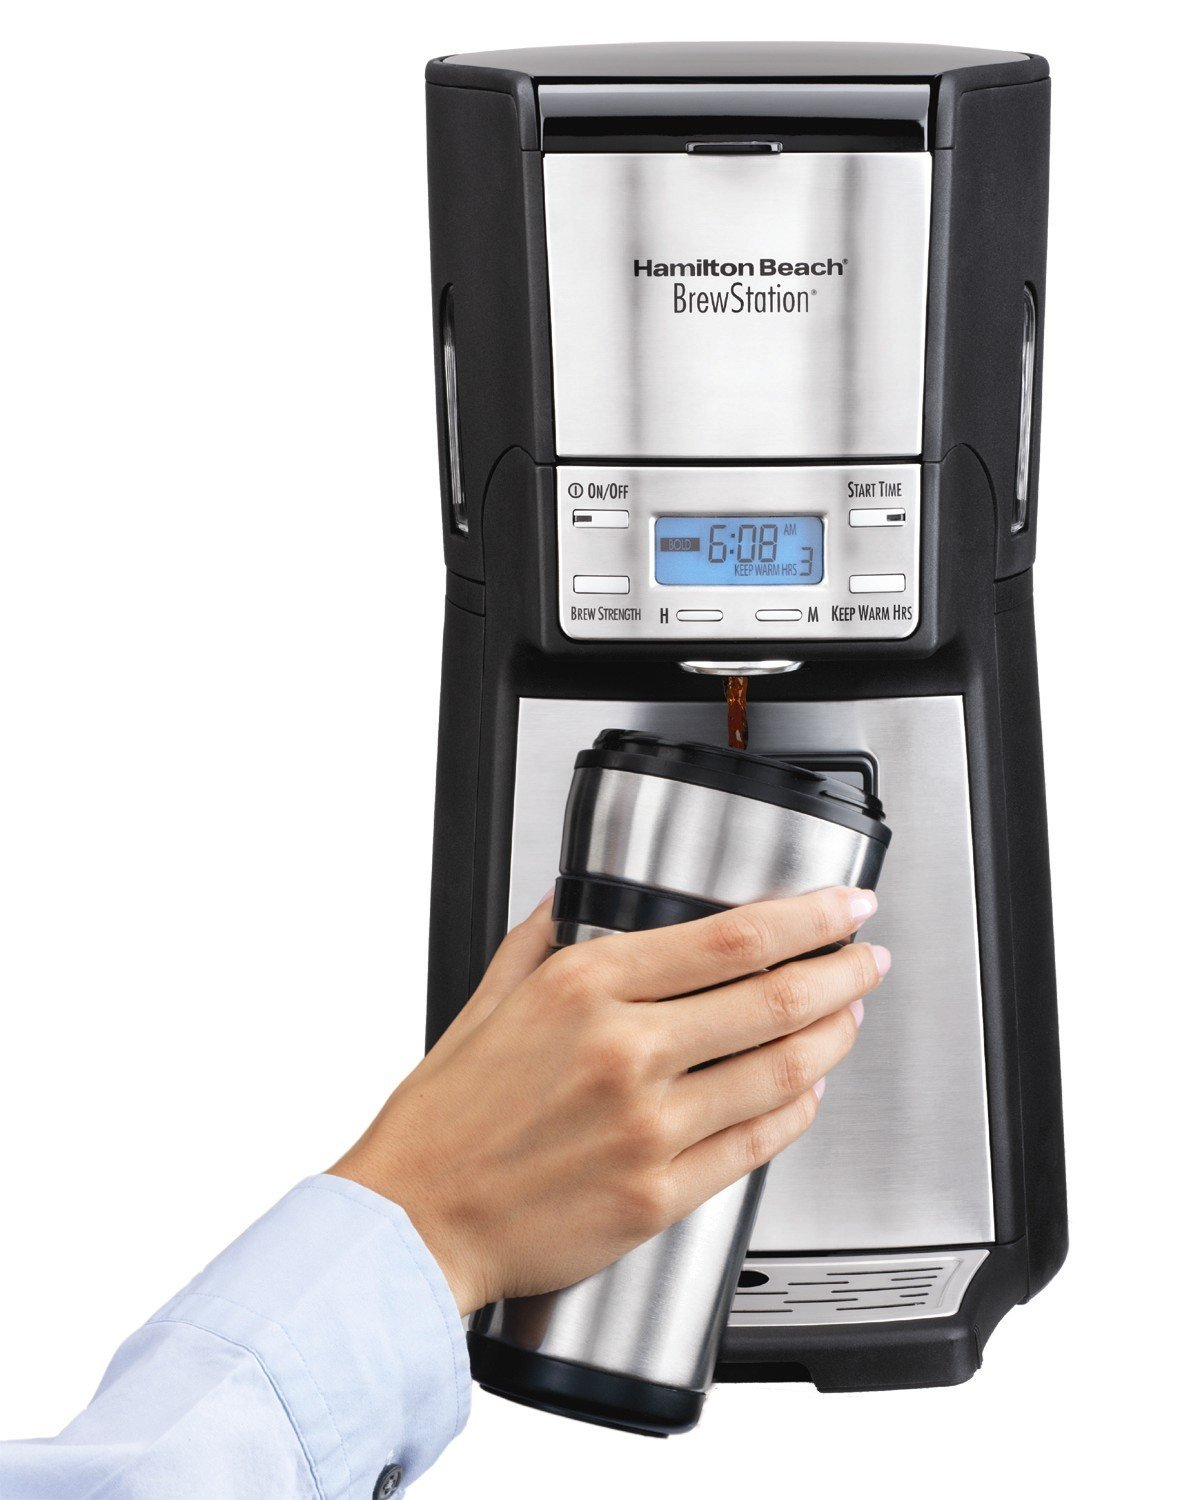 Hamilton Beach Coffee Maker 48465: 12 Cups for a Variety of Coffees